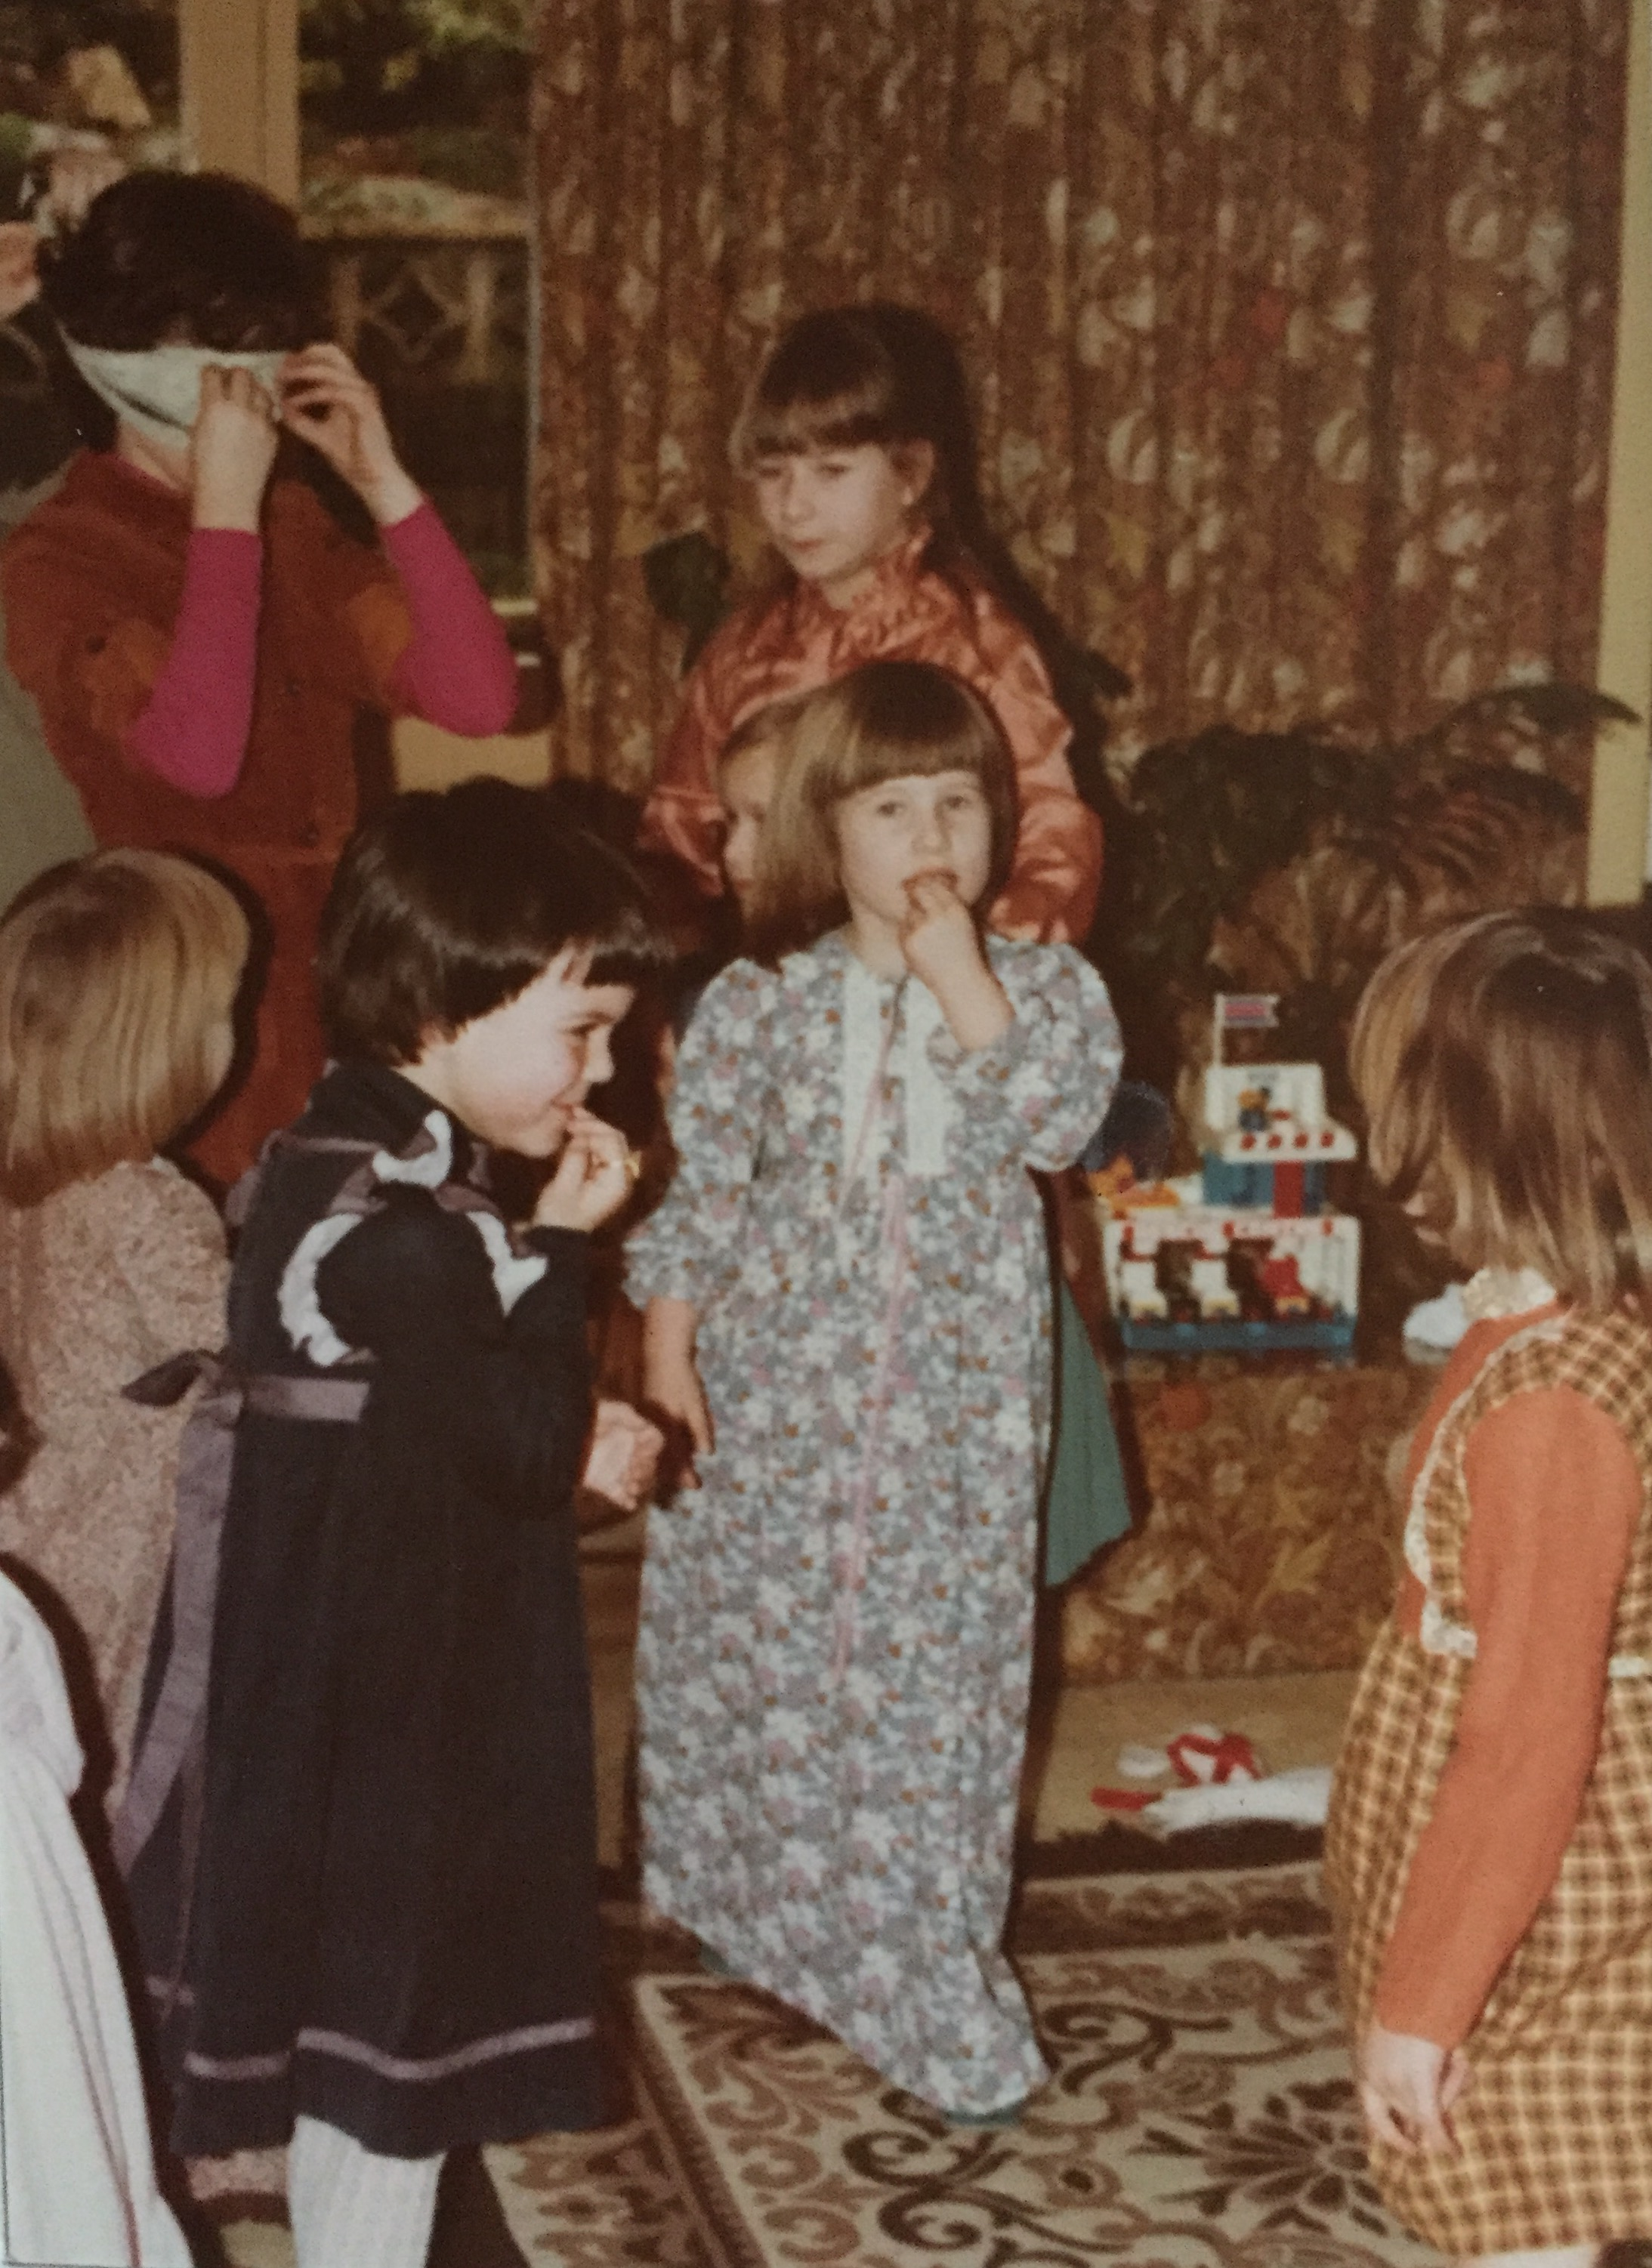 Children at a party in the 1970's.